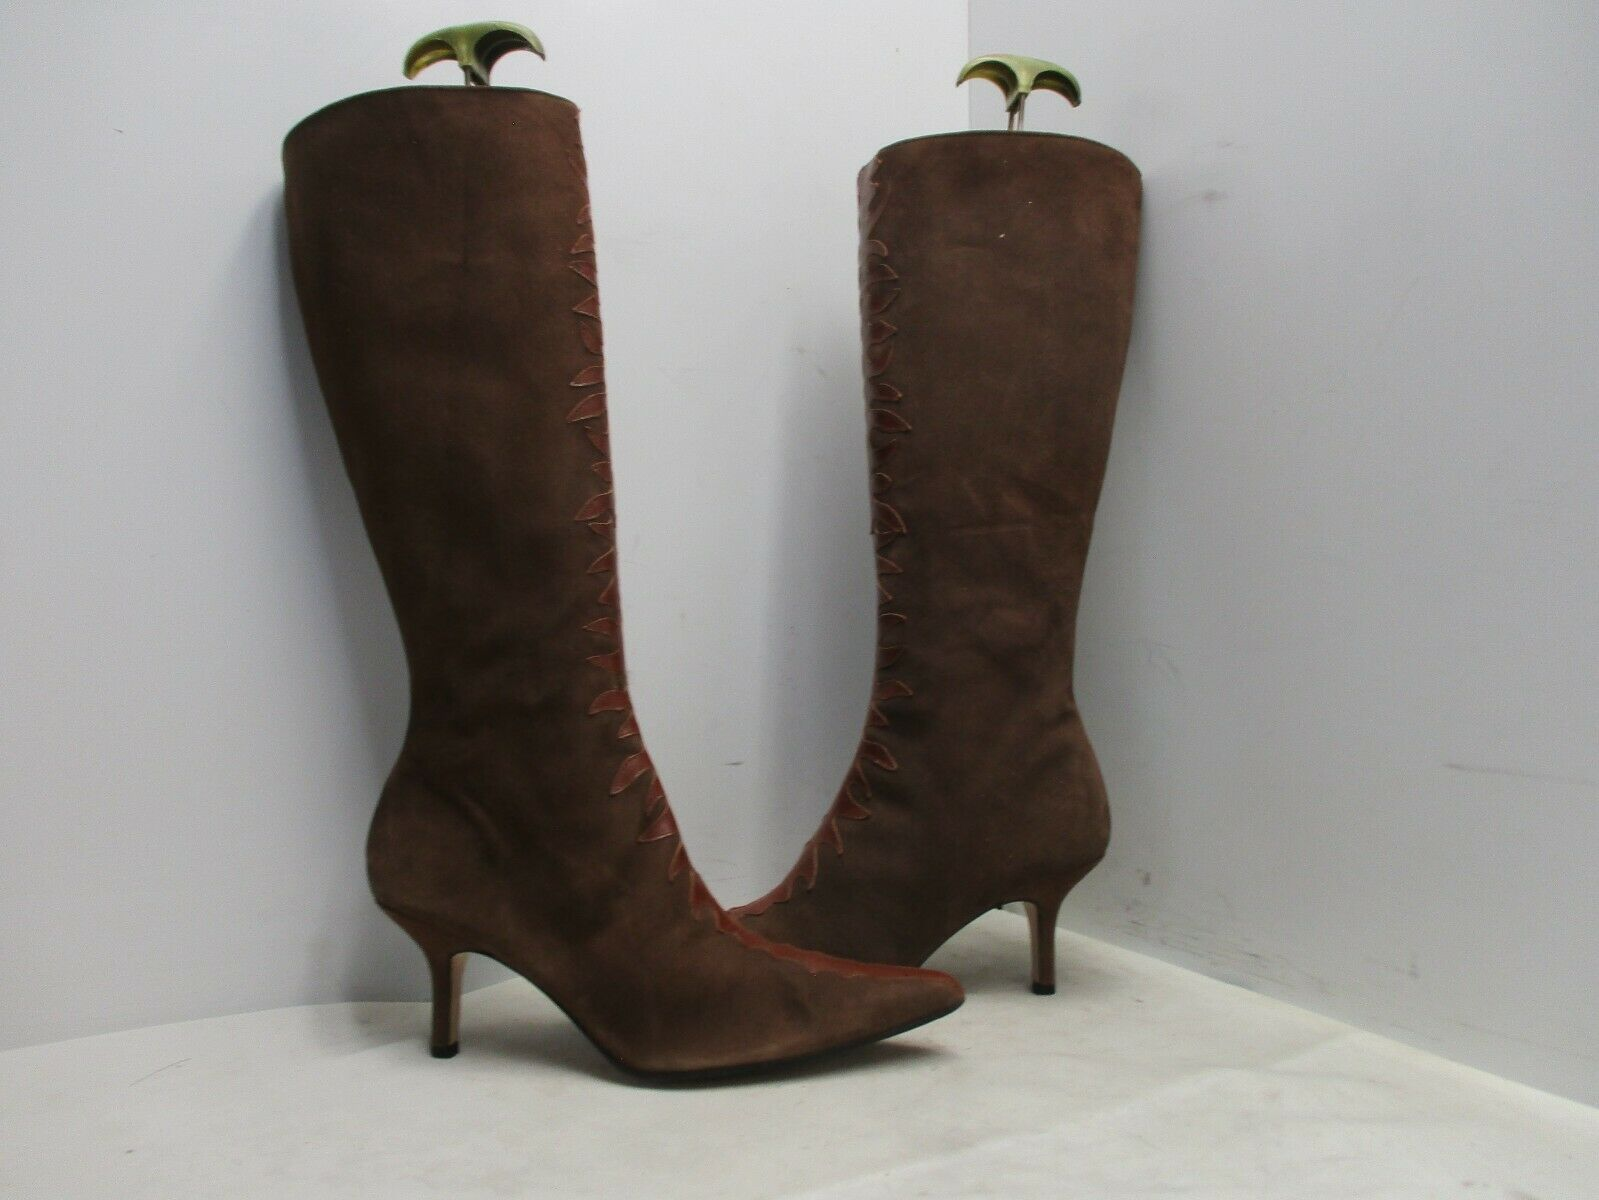 Coup Detat Brown Suede Leather Zip Pointed Toe Fashion Boots Womens Size 7.5 B